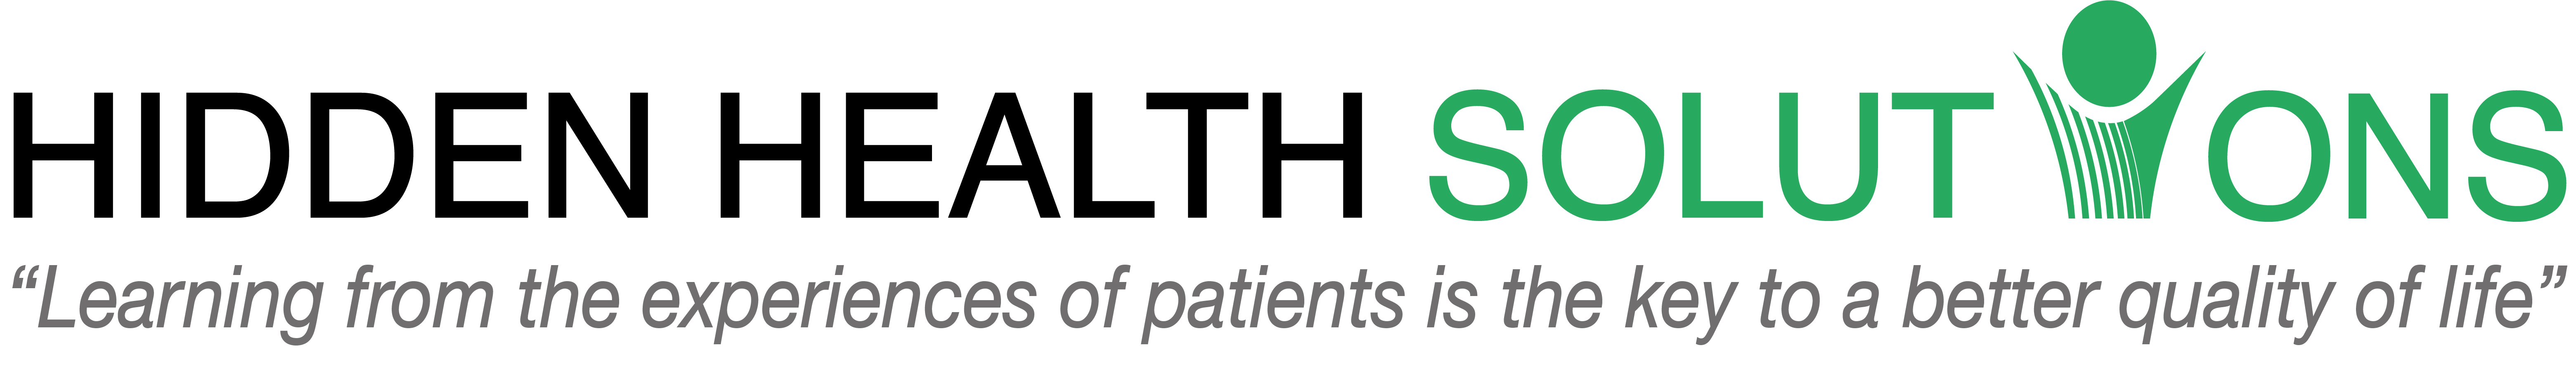 HIDDEN HEALTH SOLUTIONS logo